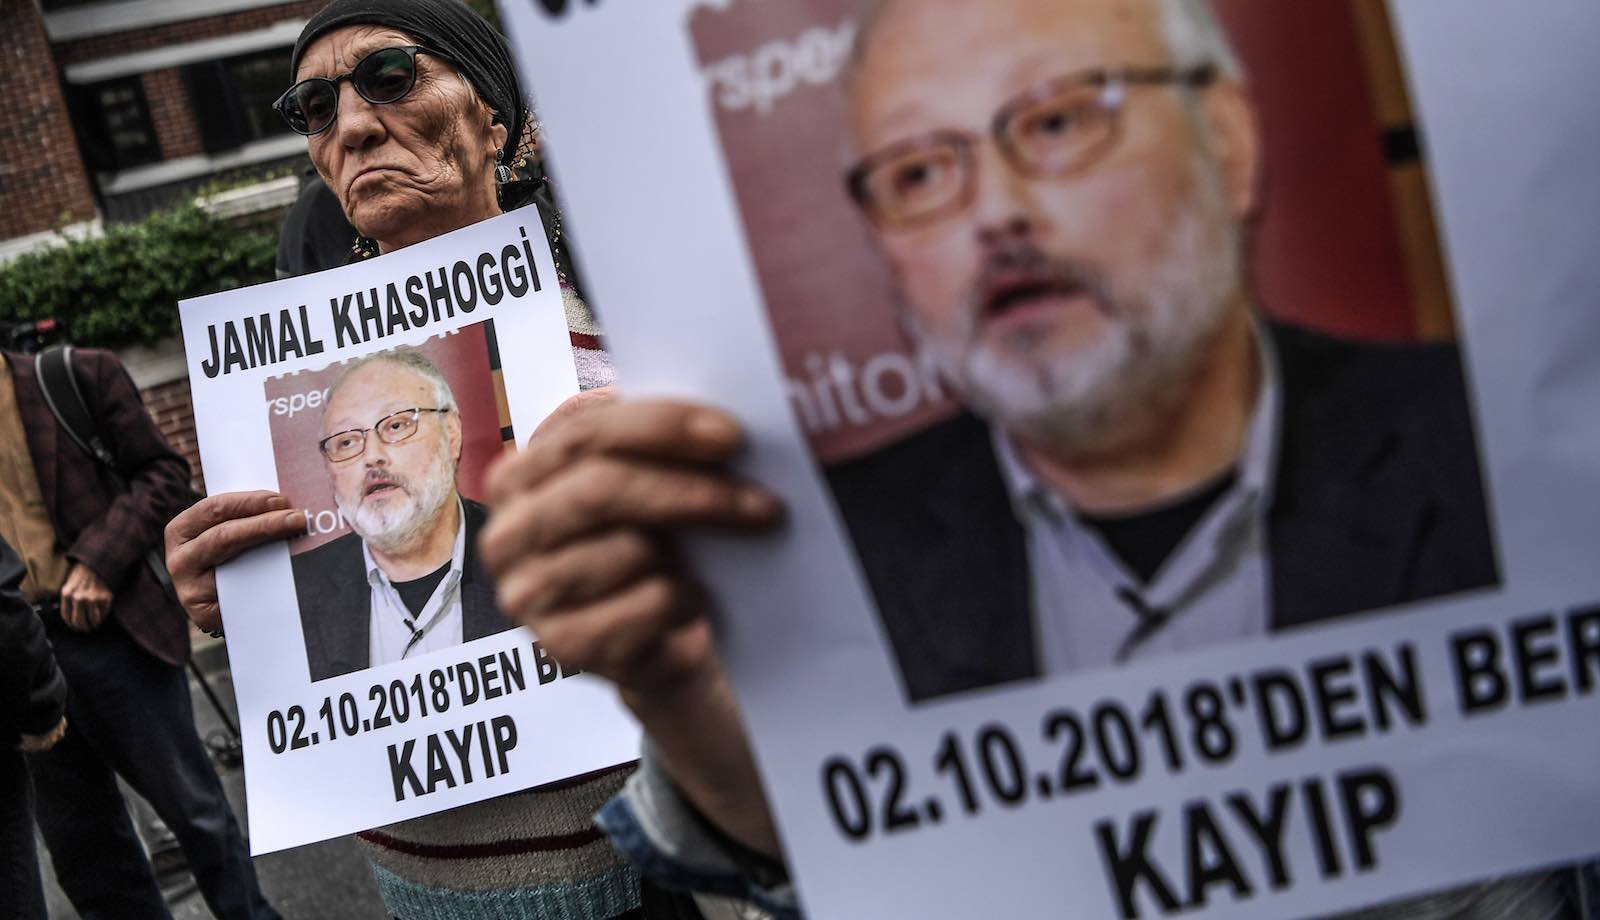 Demonstrators outside the Saudi consulate in Istanbul where journalist Jamal Khashoggi was last seen alive (Photo: Ozan Kose via Getty)